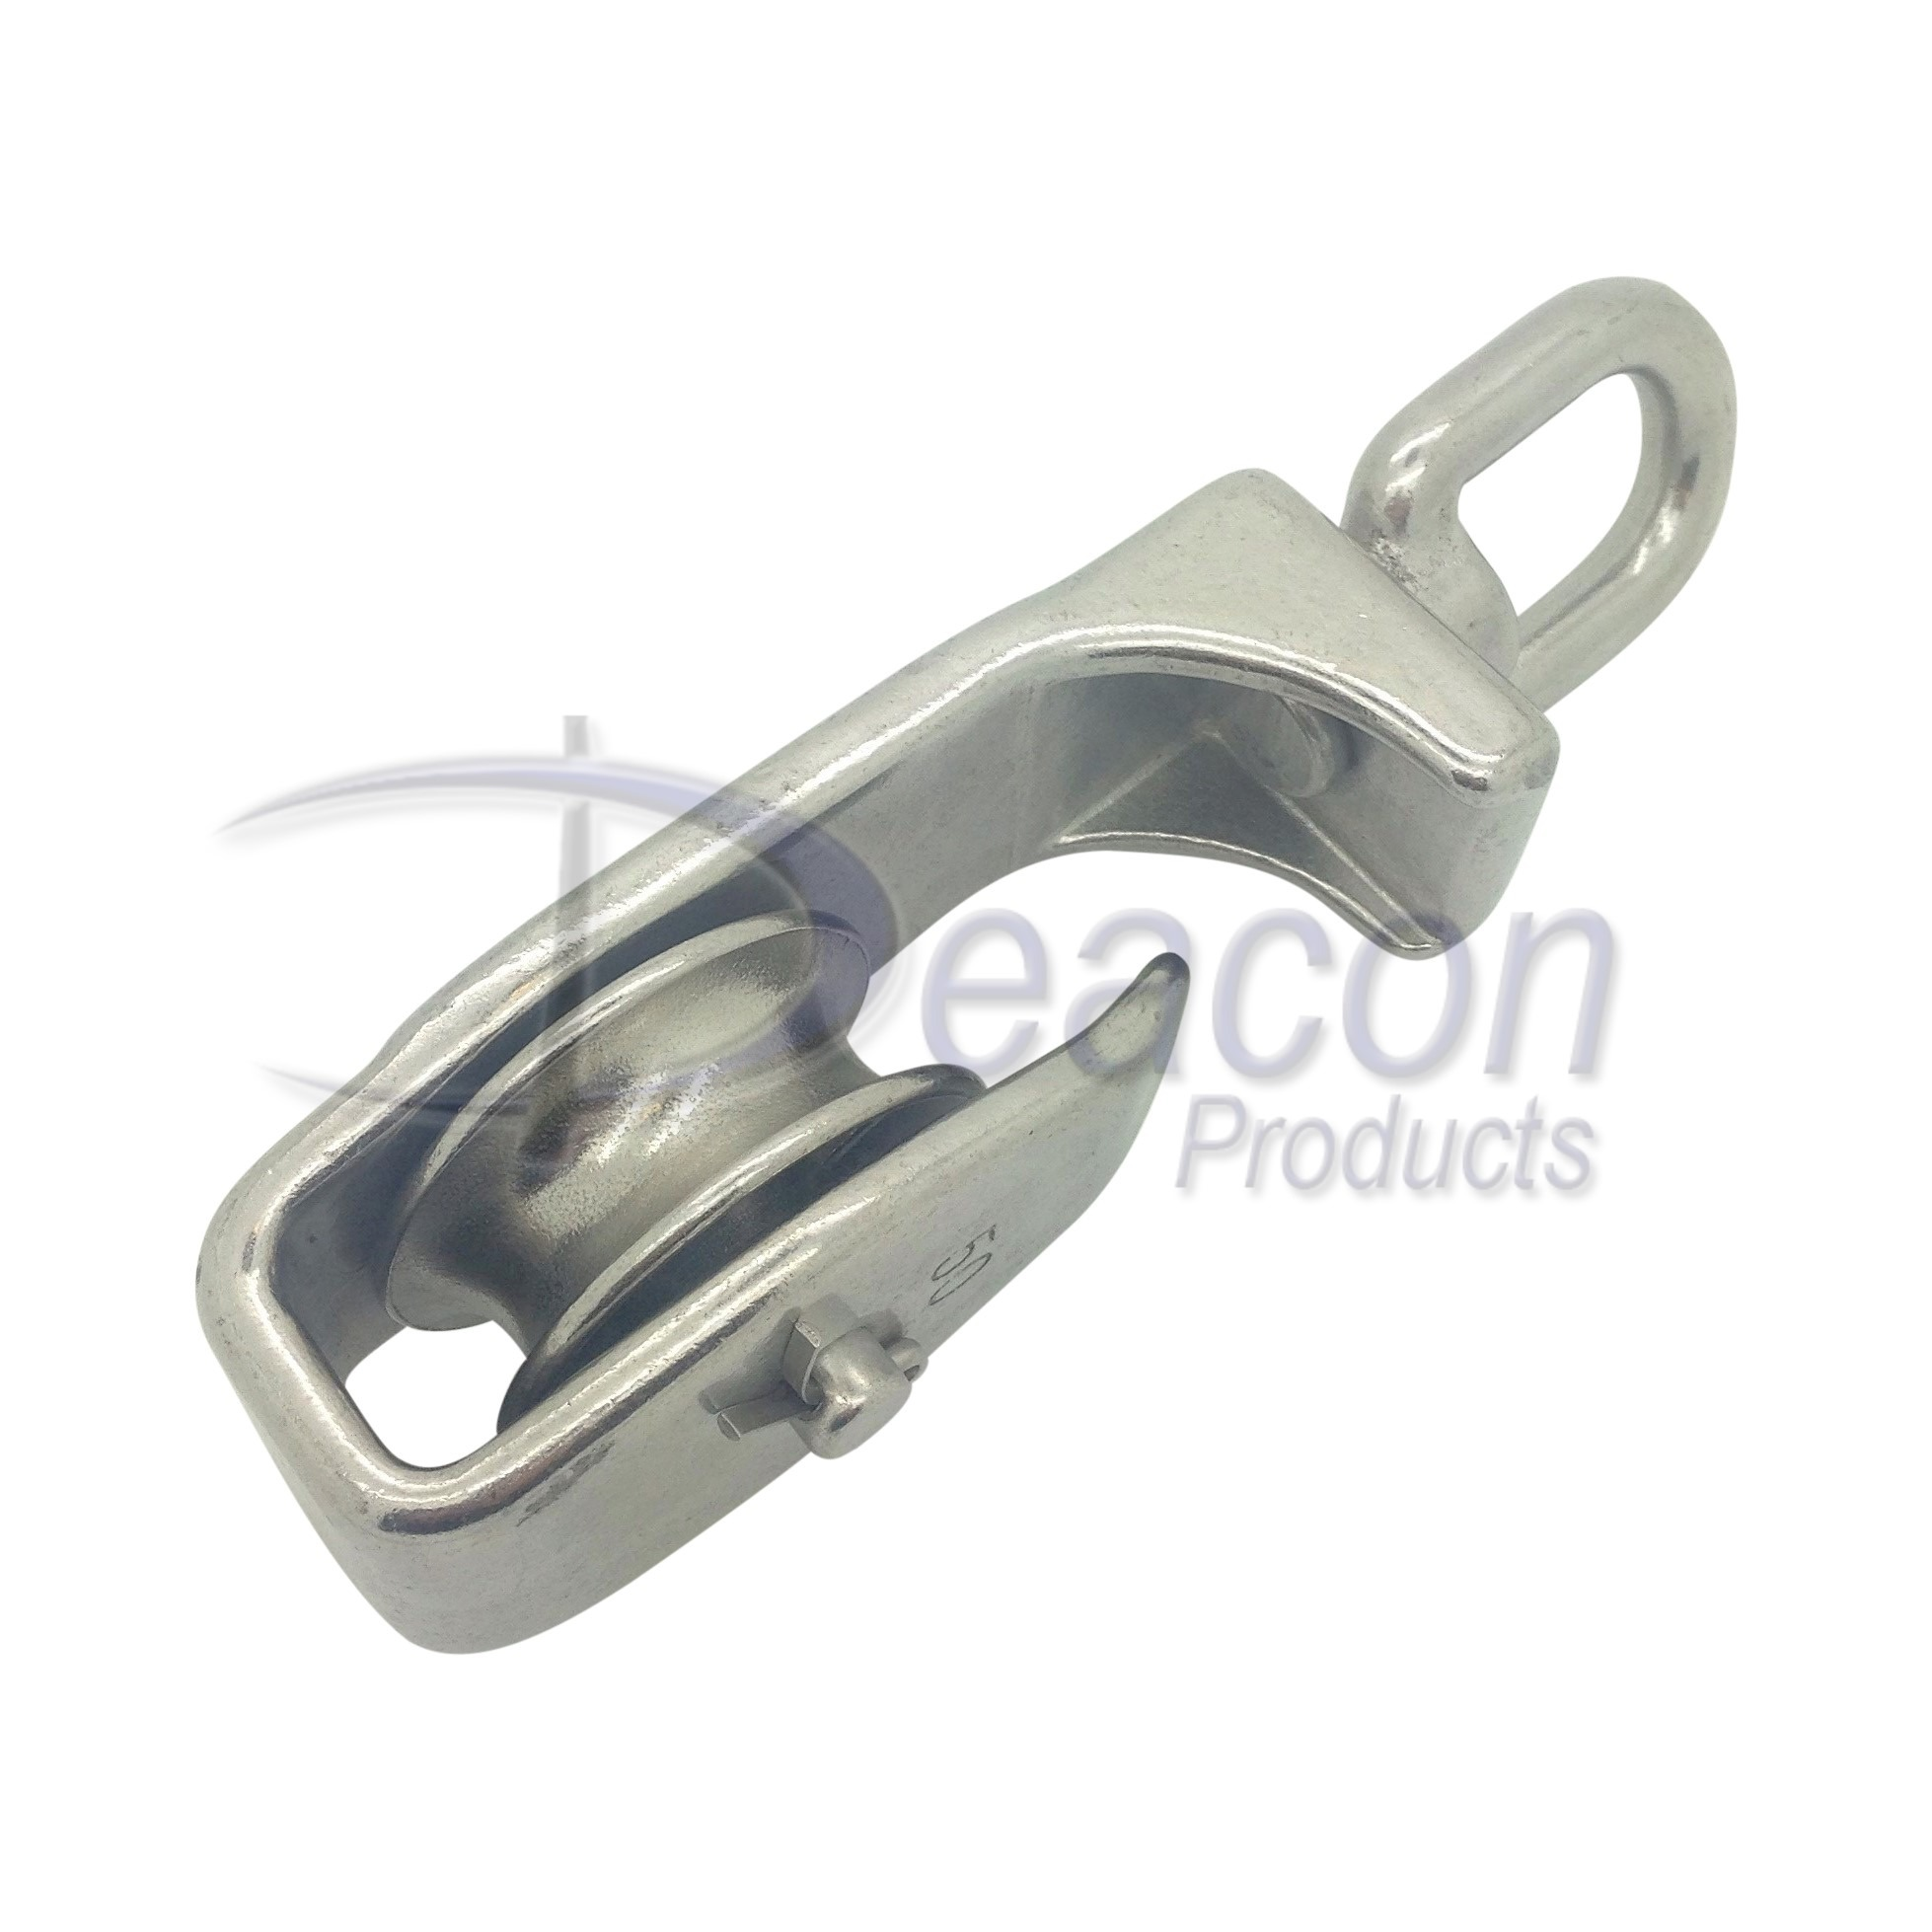 Stainless Steel Single Pulley Block with Open Side | Deacon Products